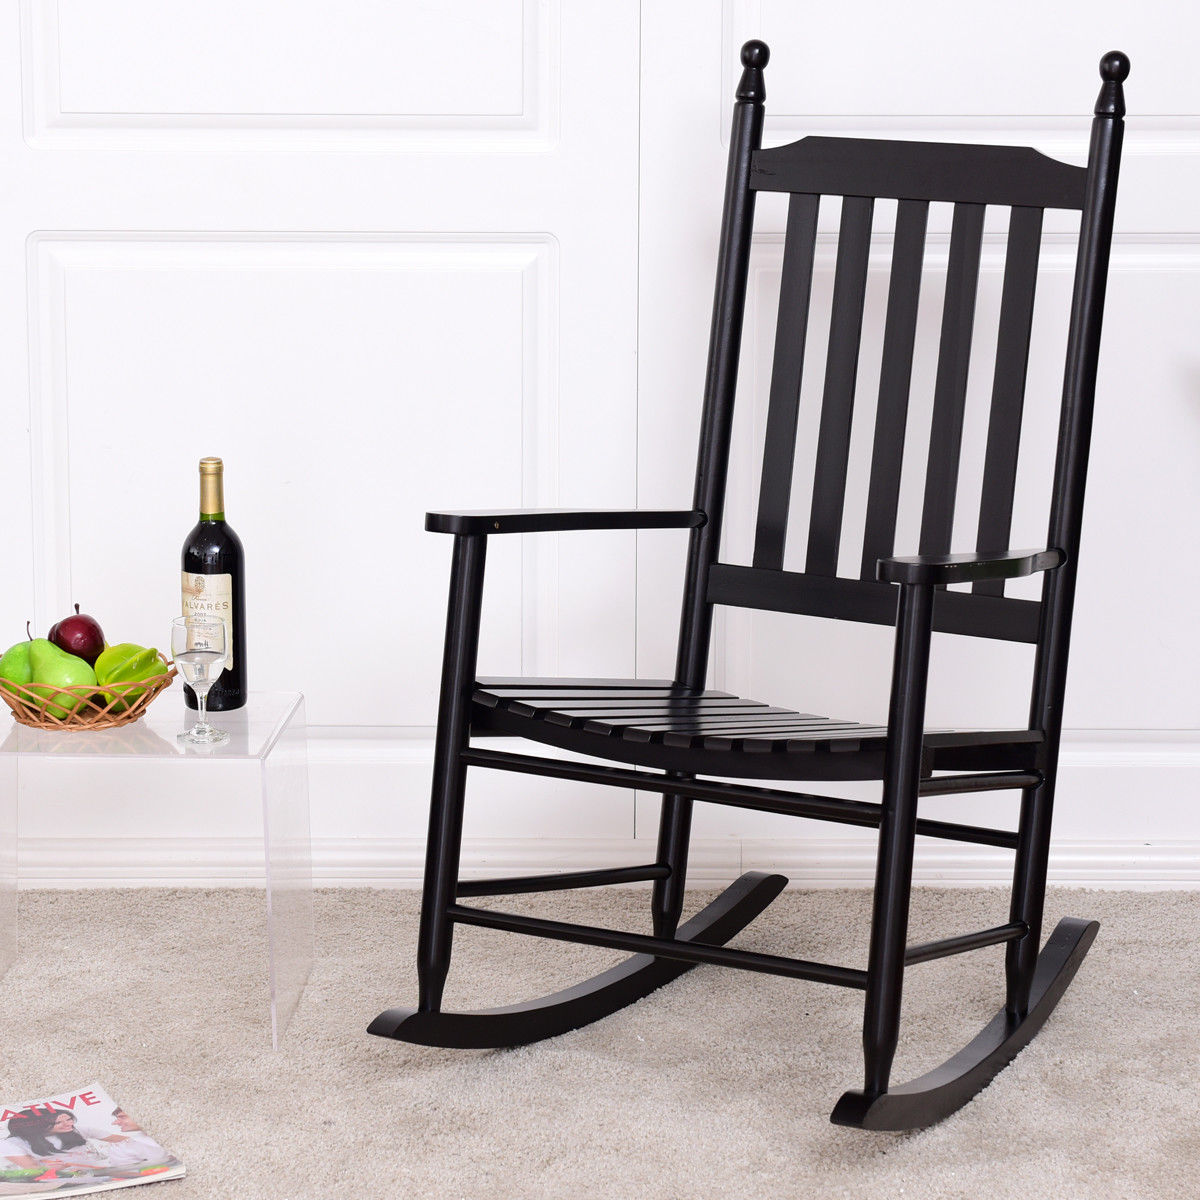 Gymax Wooden Rocking Chair Porch Rocker Armchair Balcony Deck Garden Furniture Black by Gymax